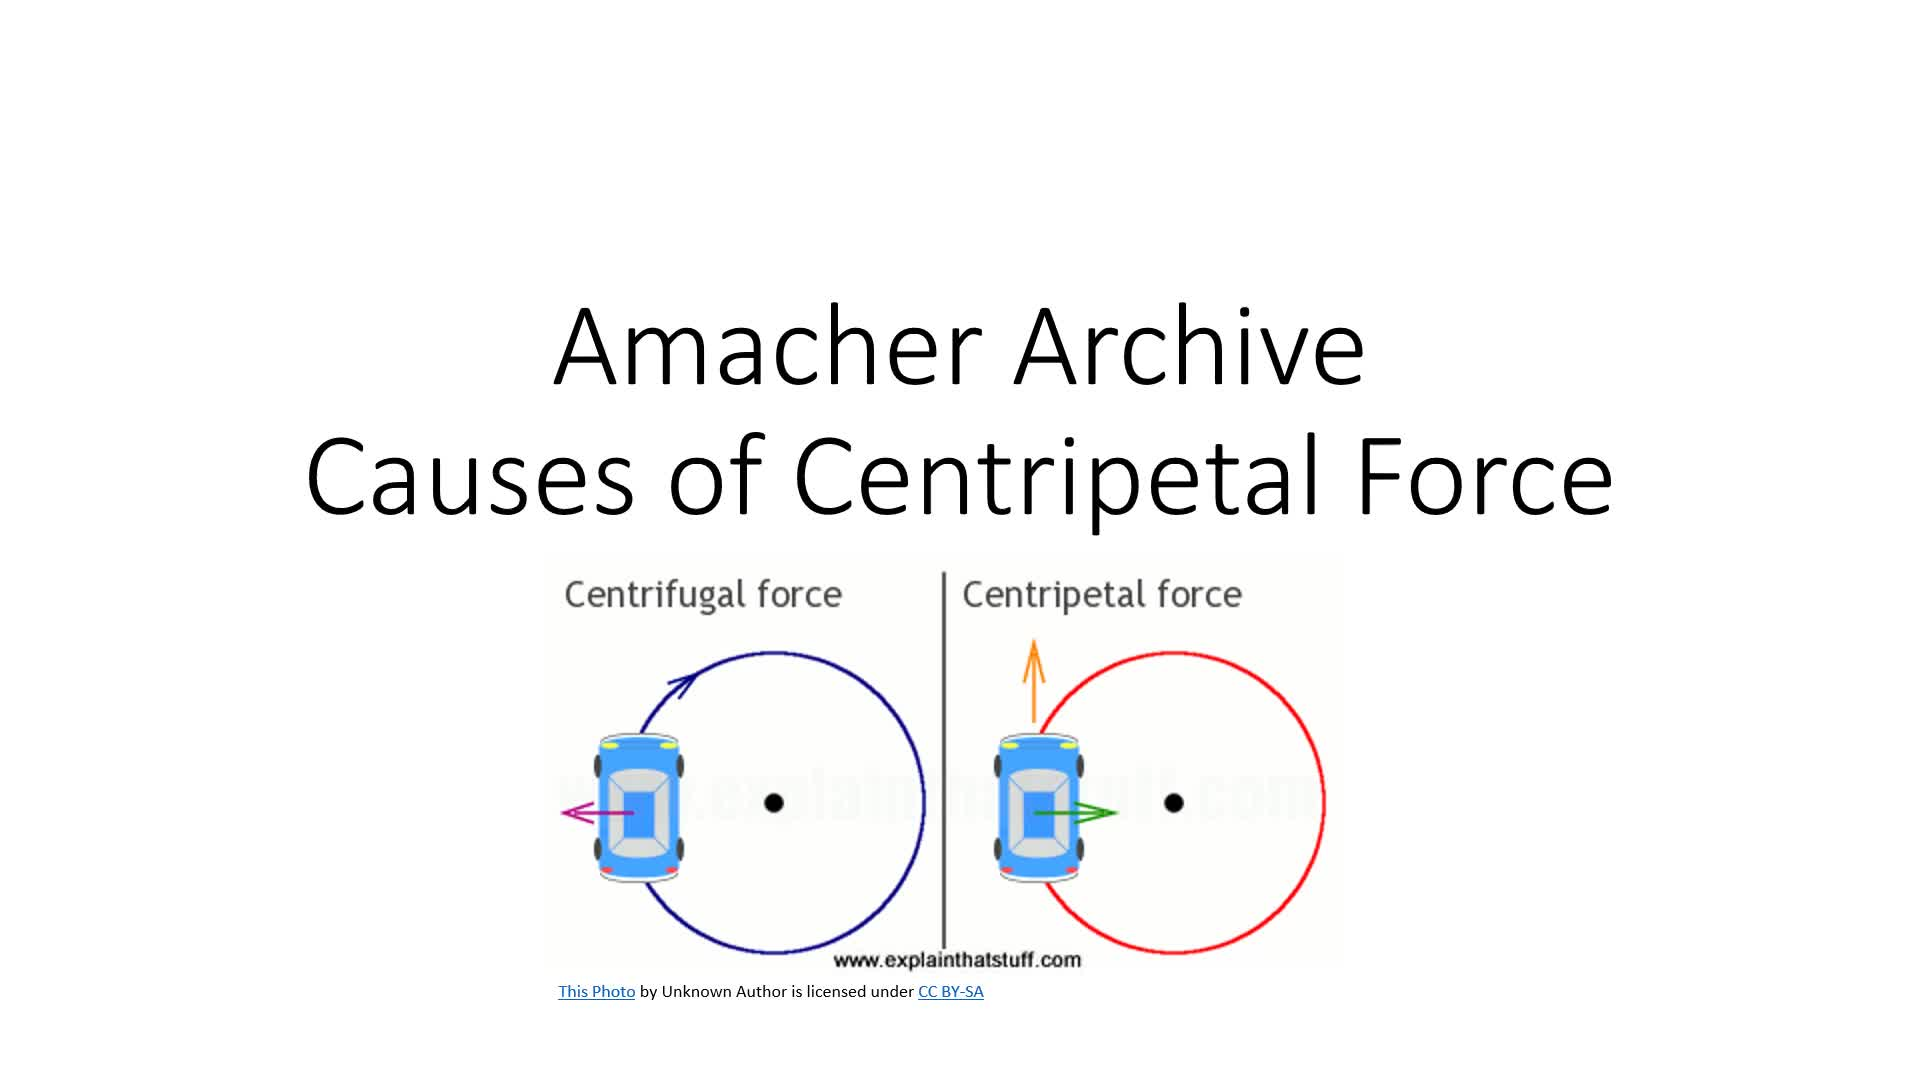 Causes of Centripetal Force Archive